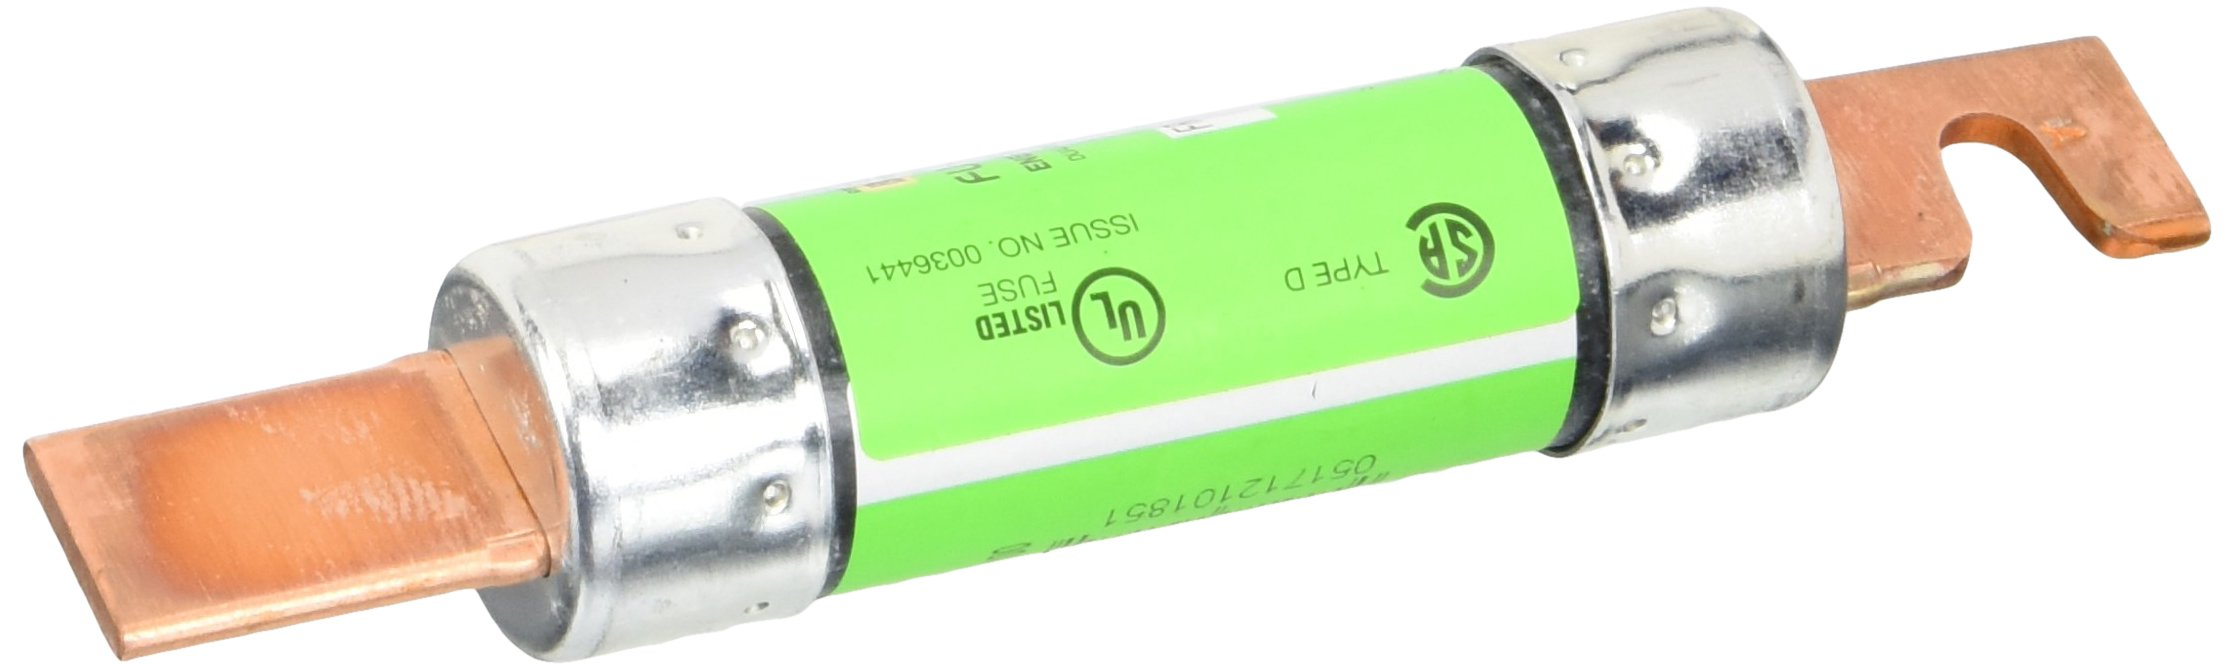 Bussmann FRN-R-100 100 Amp Fusetron Dual Element Time-Delay Current Limiting Fuse Class RK5, 250V UL Listed